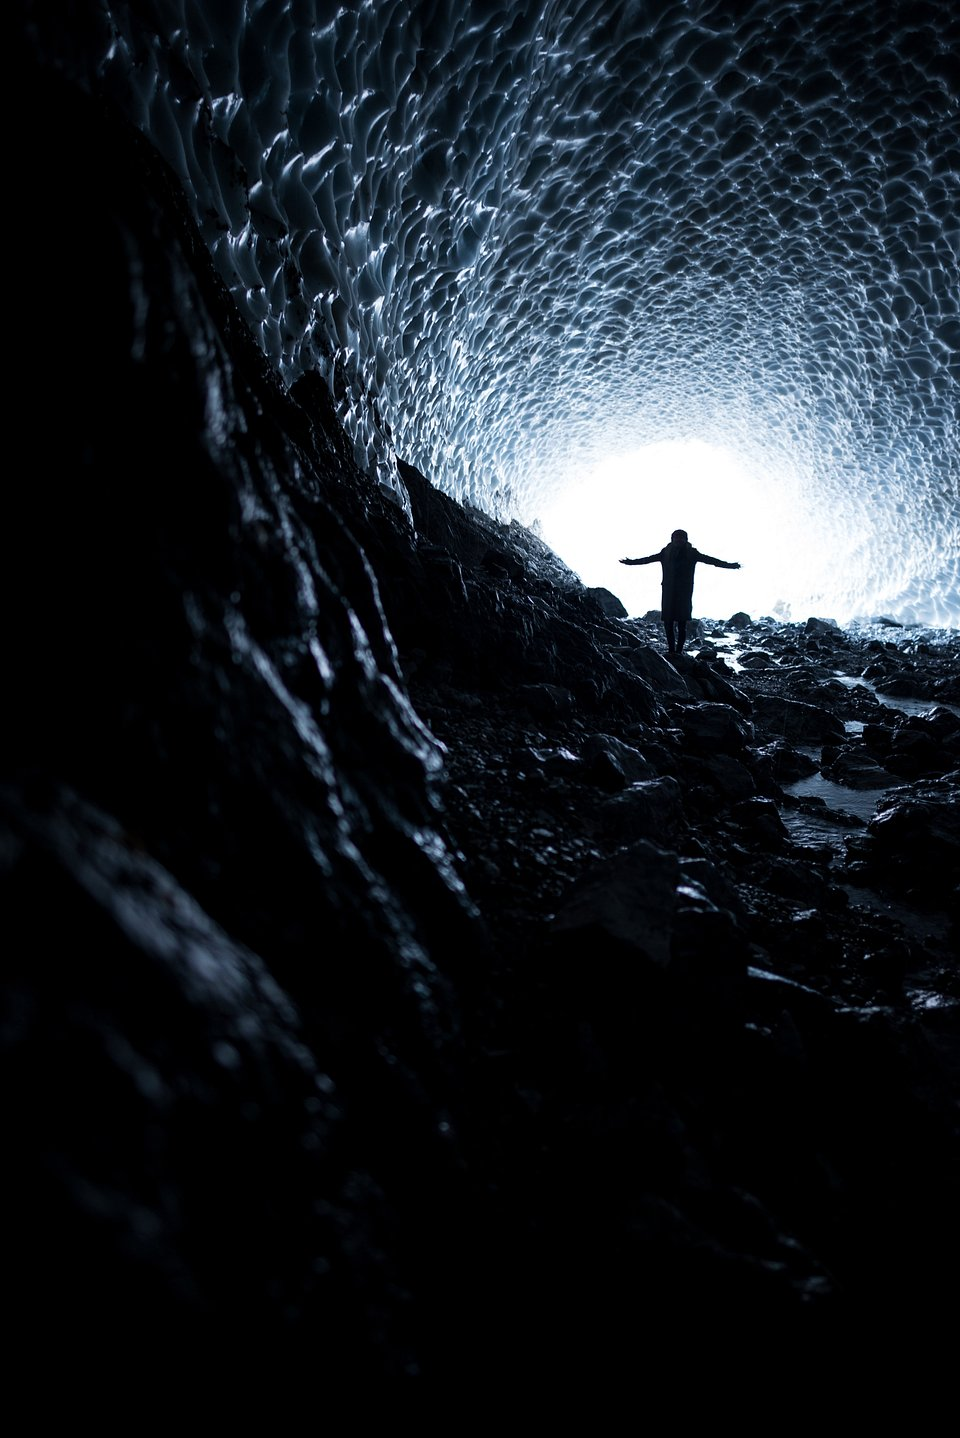 A silhouette being hugged by the light in the Eiskapelle ice cave in Bavaria, Germany. A kind reminder that there's always light at the end of a dark tunnel. (Maximilian Dreher/Agora)